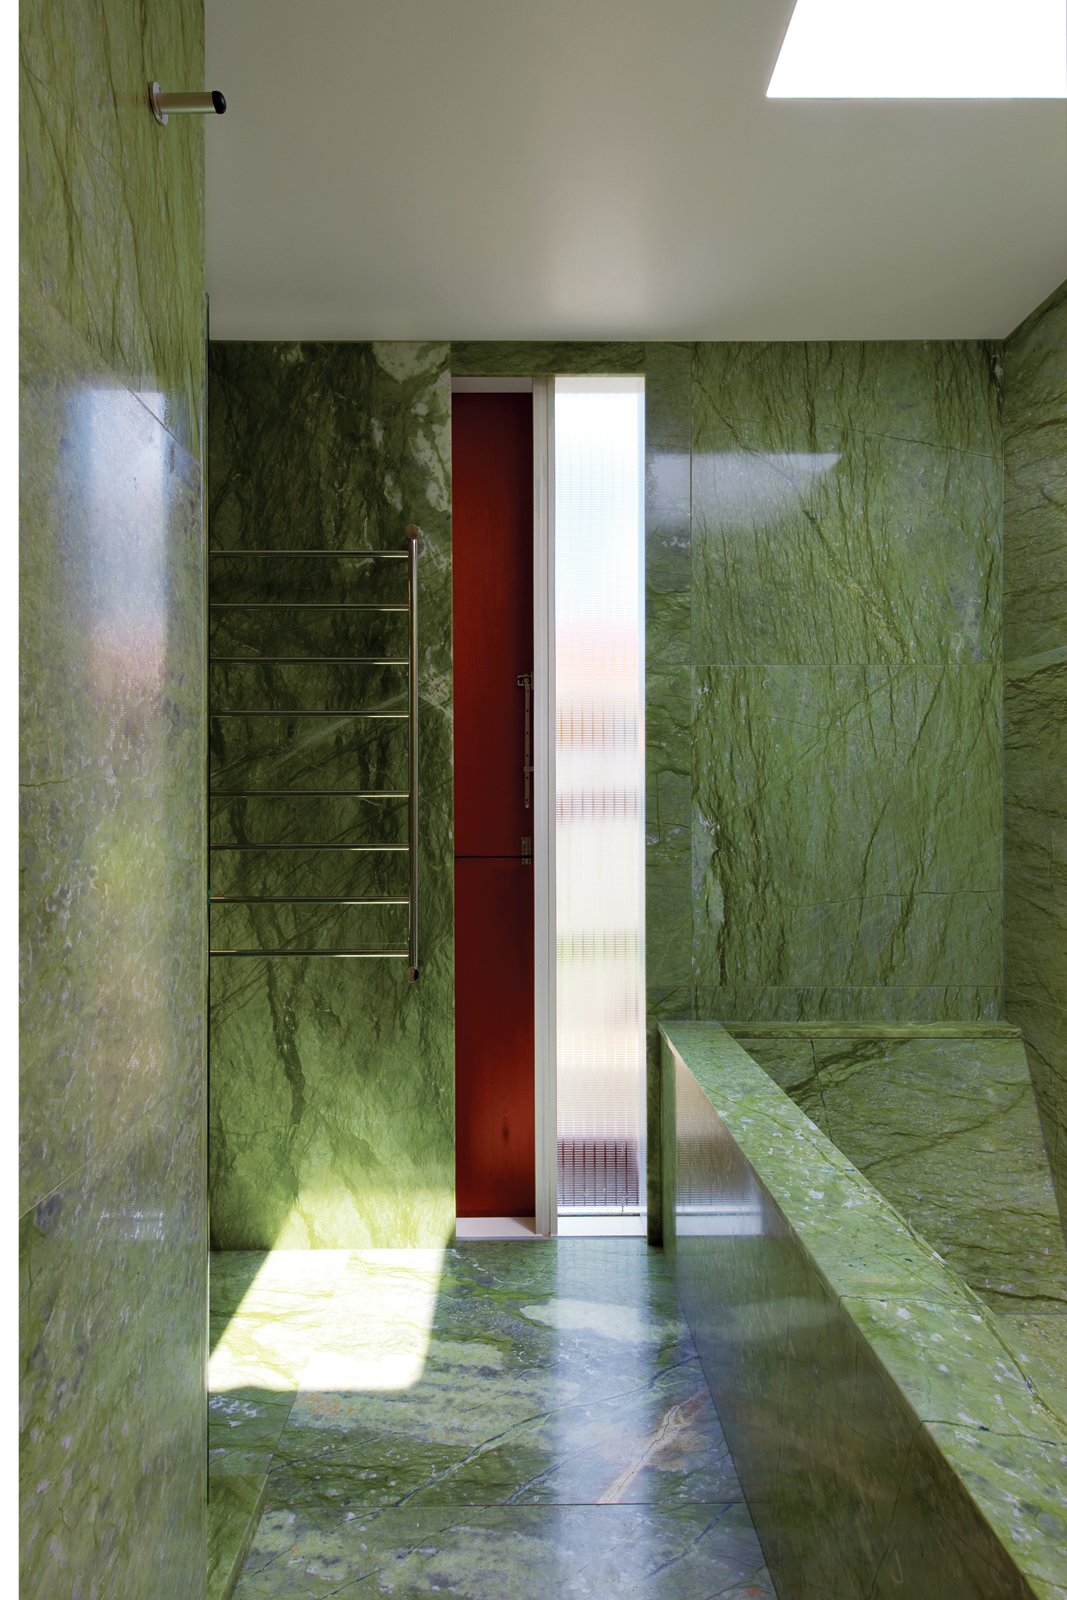 The tiny budget still allowed room for some strategic splurges, such as the vivid green Verde Ming marble in the house's only bathroom